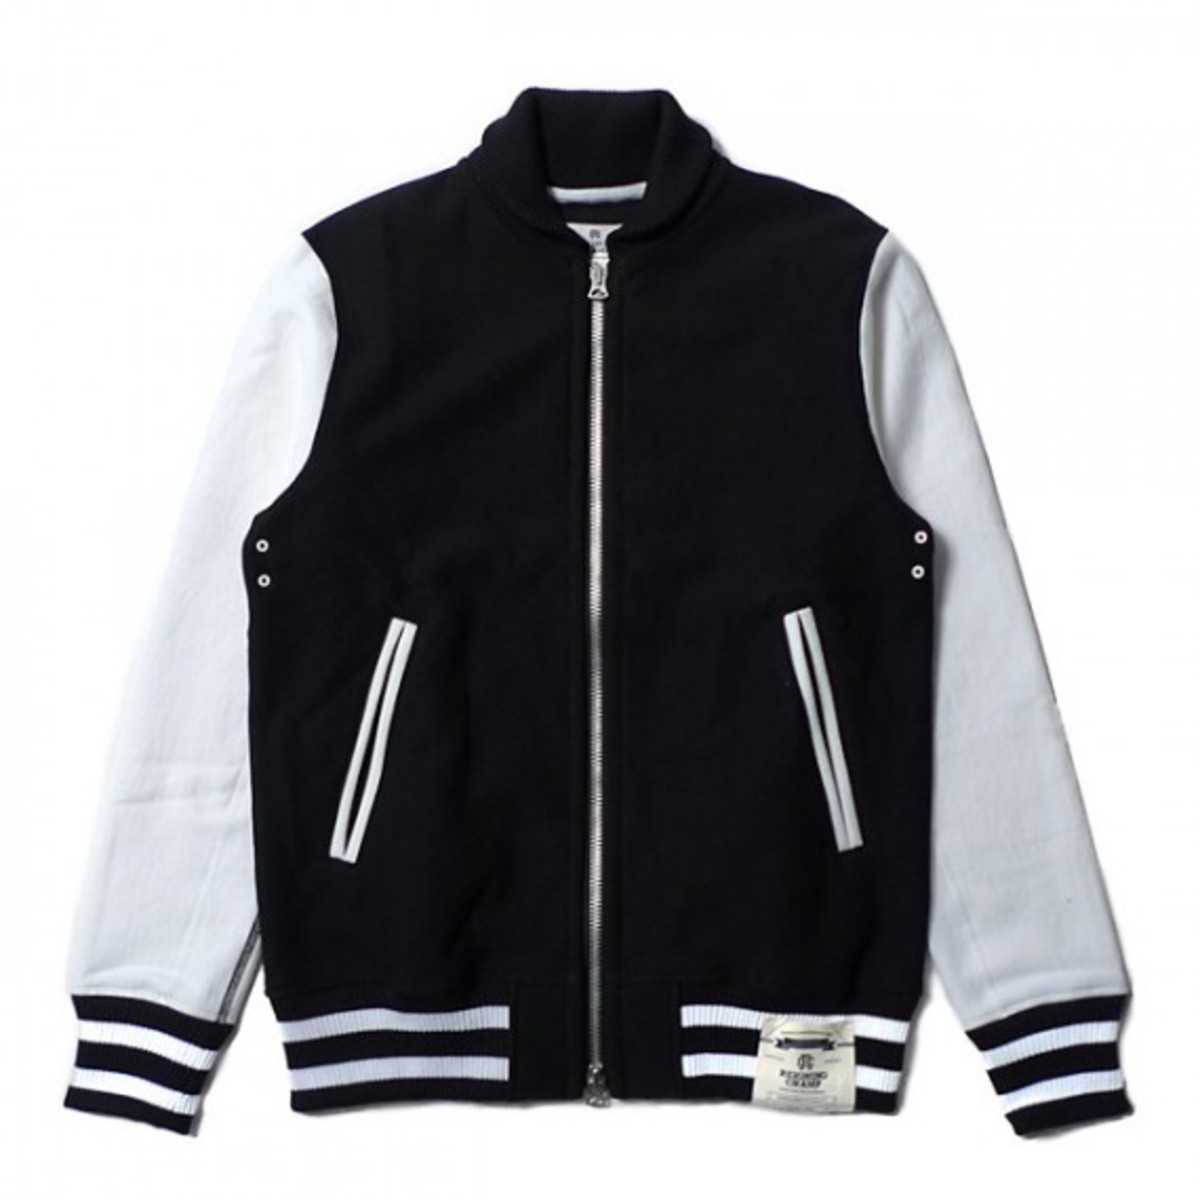 reigning-champ-fall-winter-2010-collection-delivery-8